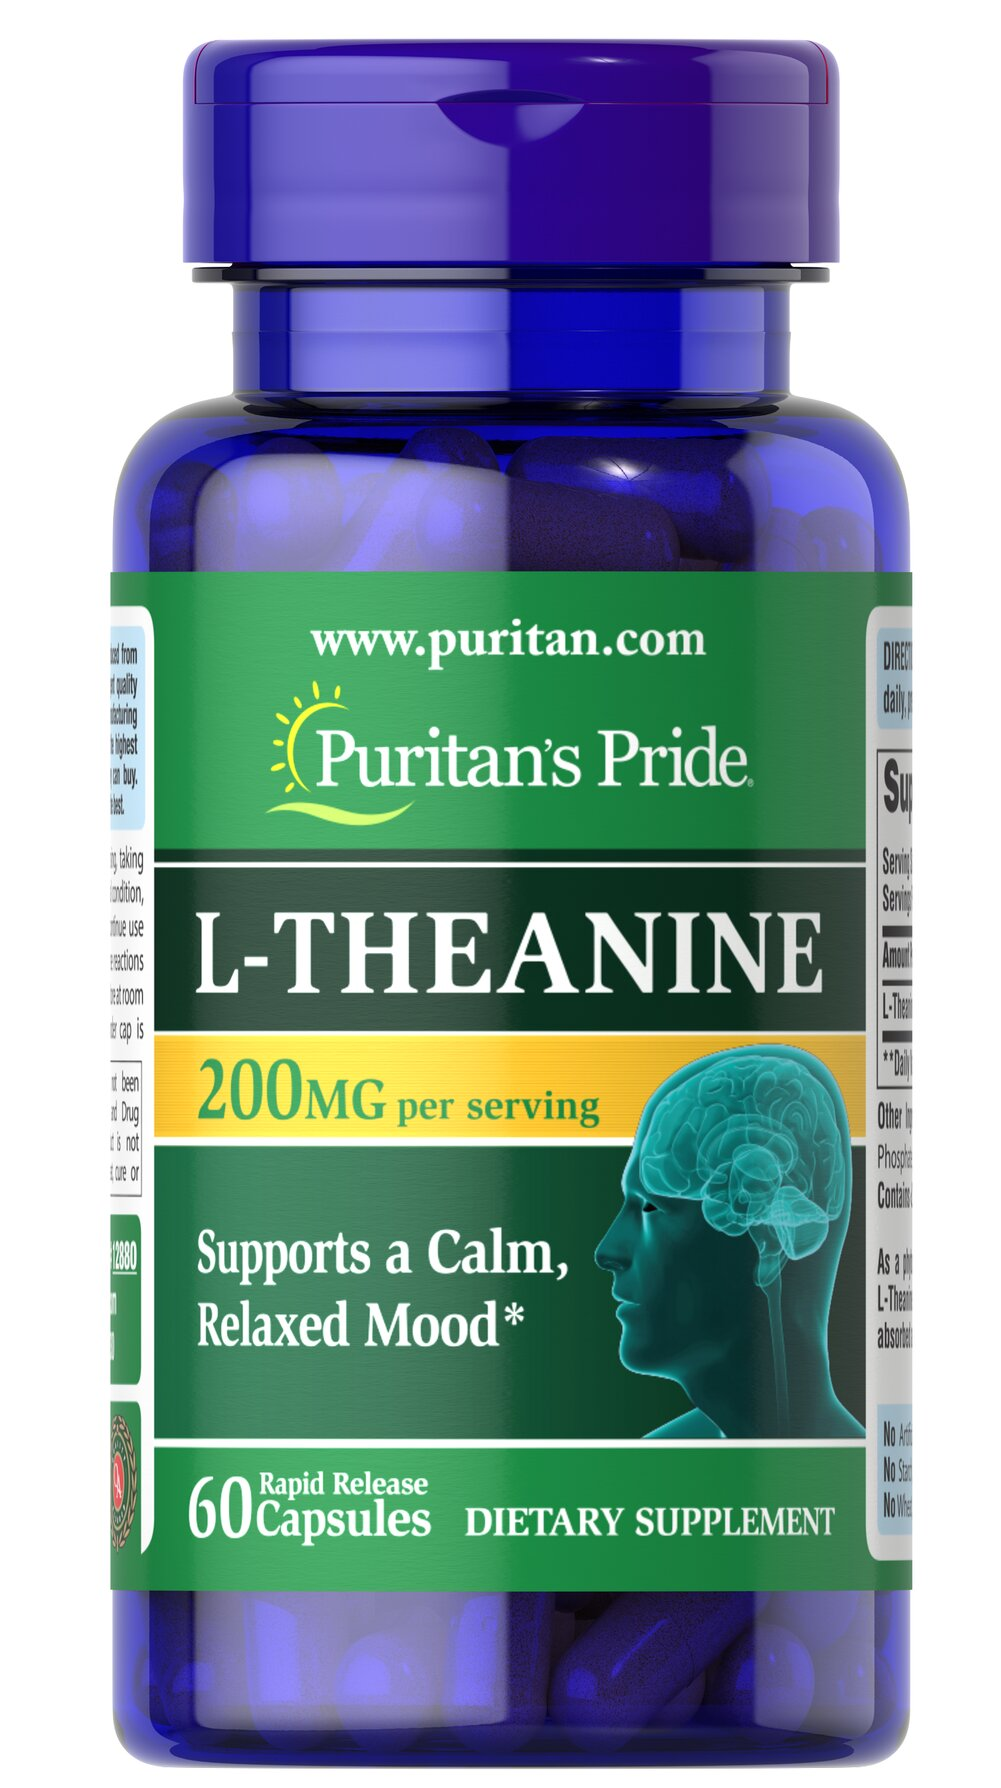 L-Theanine 200 mg <p>A close relative of Glutamate, studies indicate that L-Theanine interacts with the neurotransmitter, GABA (gammaminobutyrate).** GABA, known for its importance in nervous system functioning, works with the mood centers of the brain.** Studies in Japan show that L-Theanine helps support the body's ability to deal with PMS and occasional, everyday anxiety.**</p> 60 Capsules 200 mg $16.99